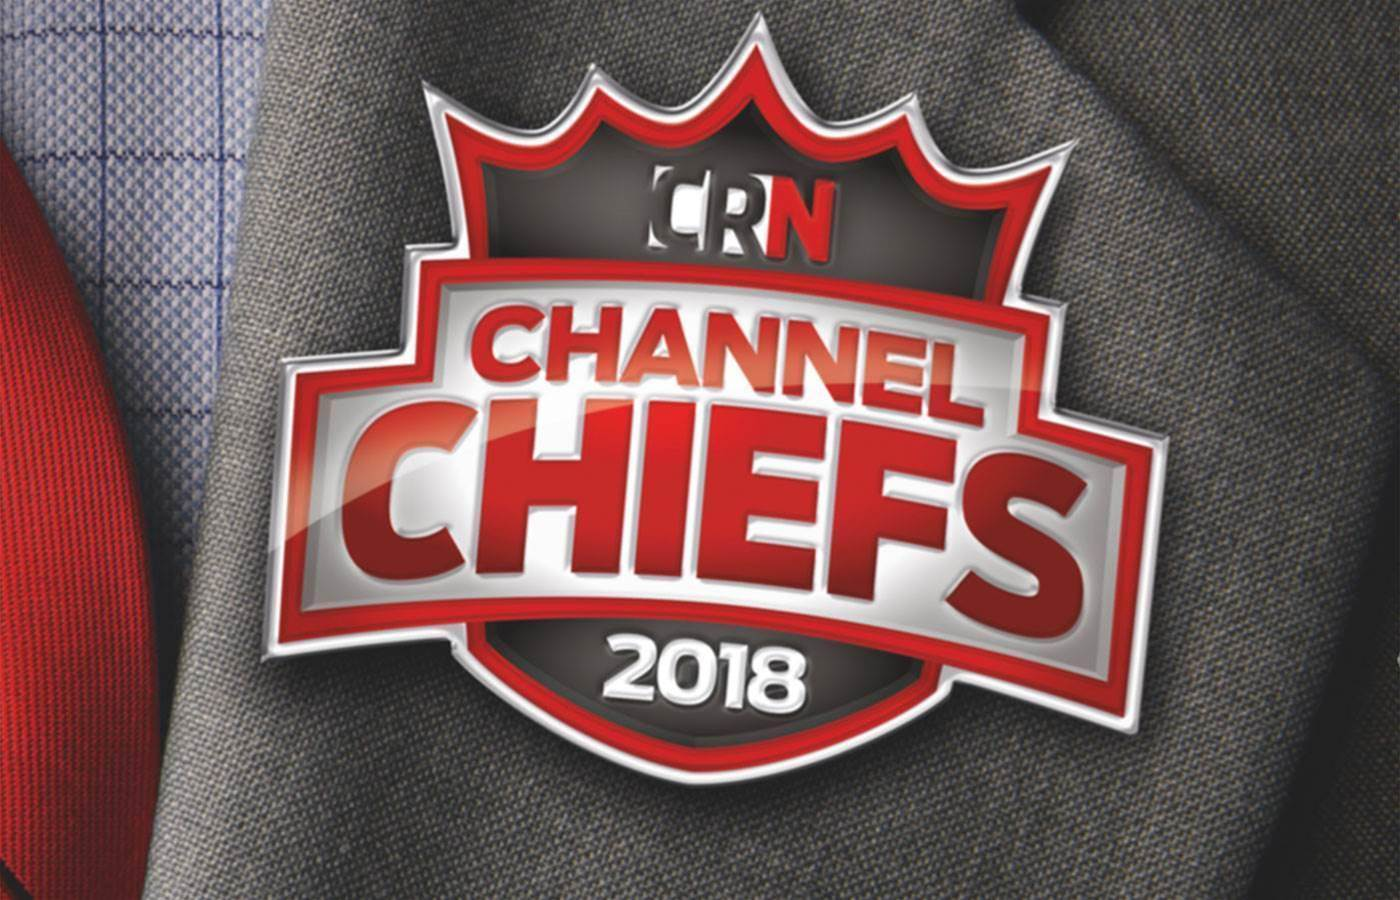 The 2018 CRN Channel Chiefs